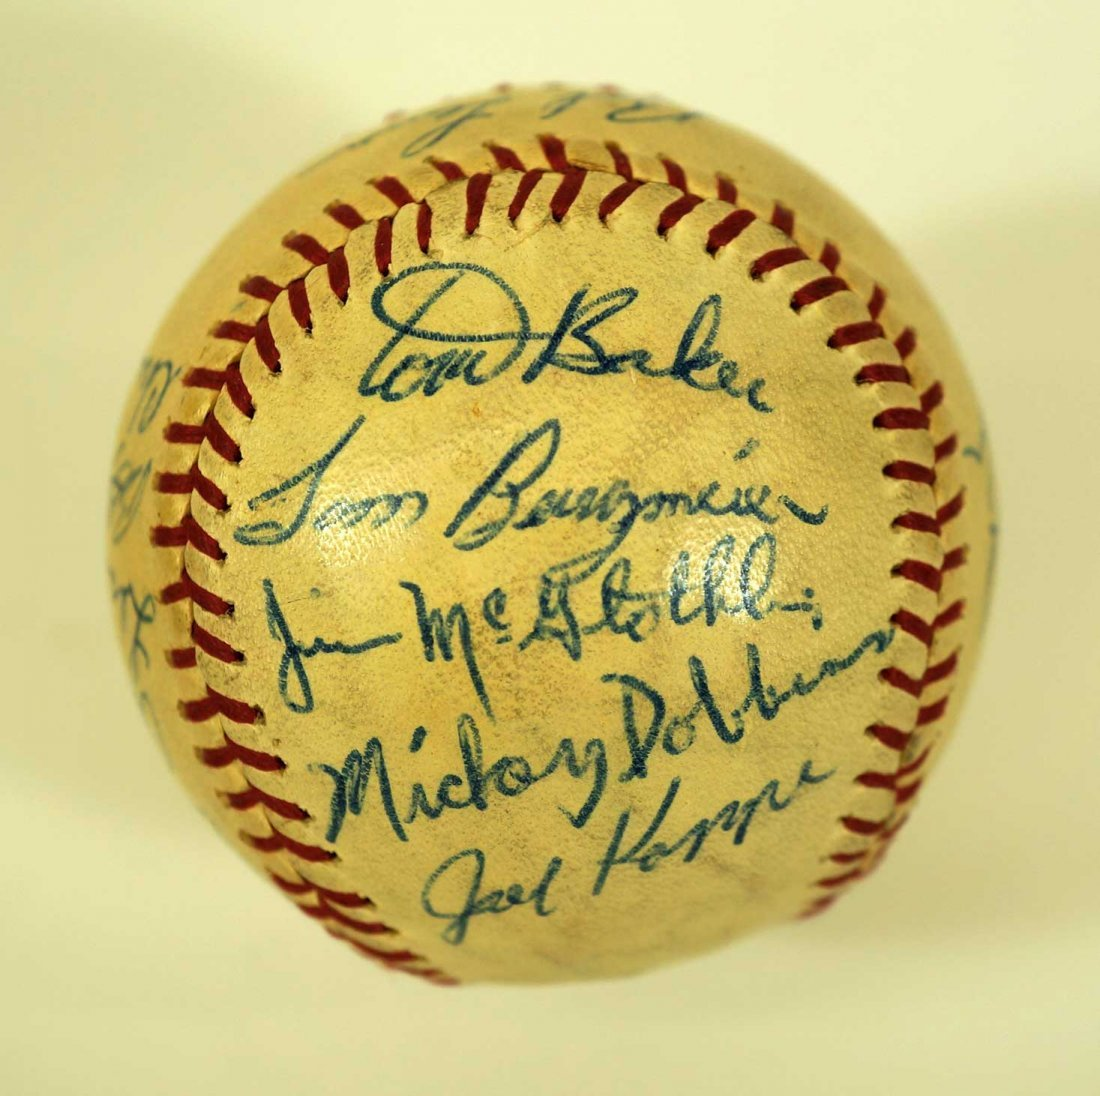 1965 Seattle Angels Team Signed Baseball. Ball contains - 3